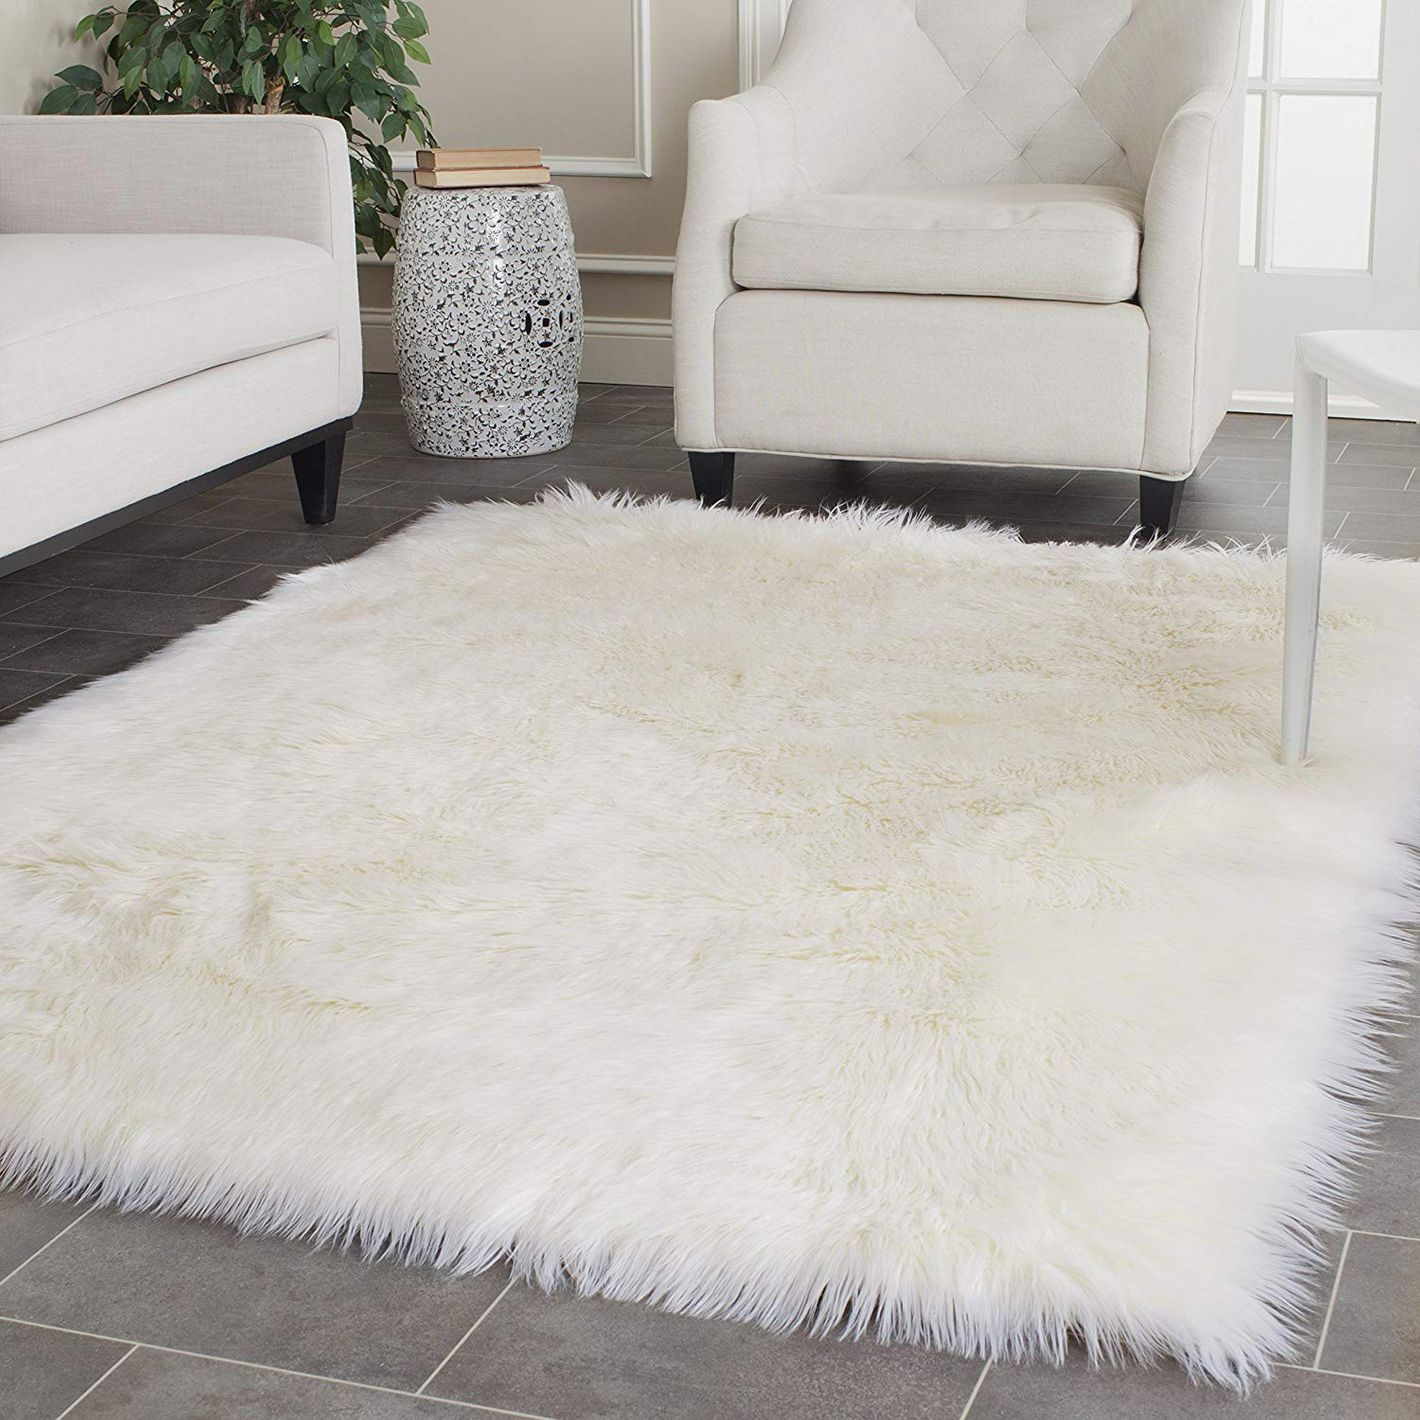 11 Best Area Rugs Under $200, 2018 | The Strategist | New ...